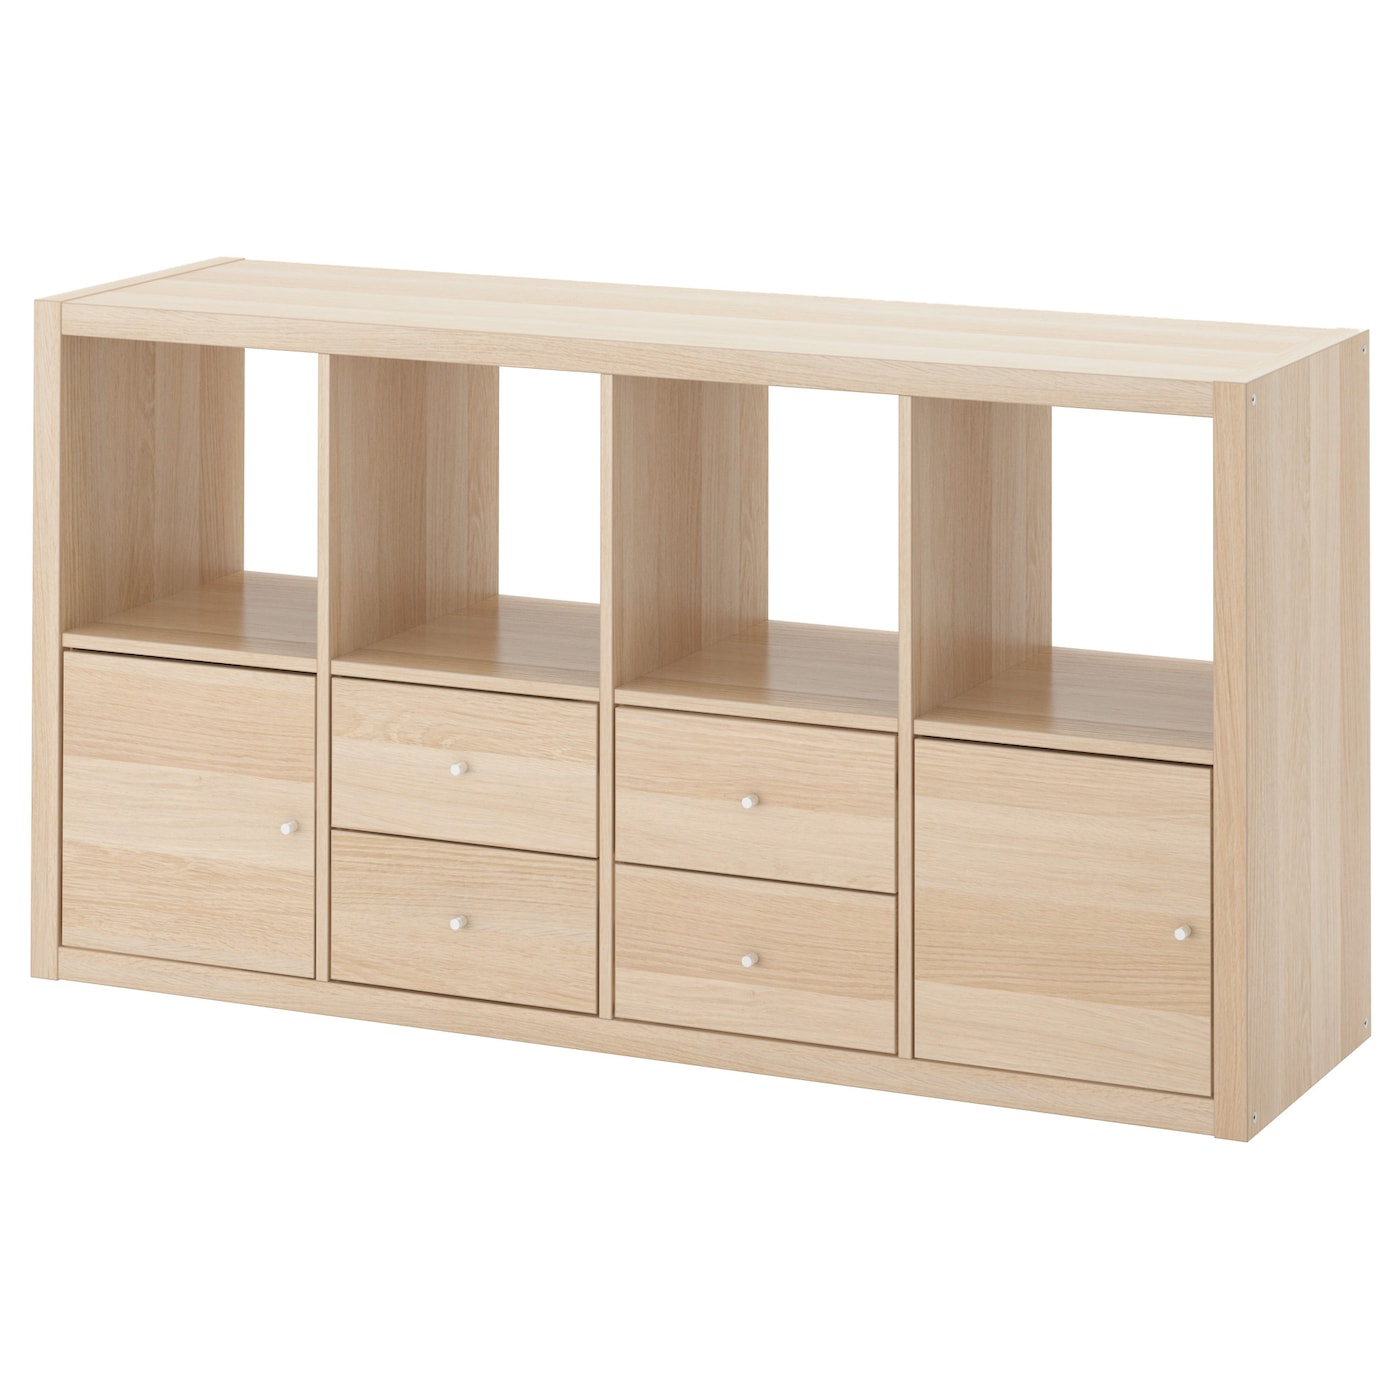 dp com chest and s amazon bookshelf with larger badger toy basket cushion kid storage bench view